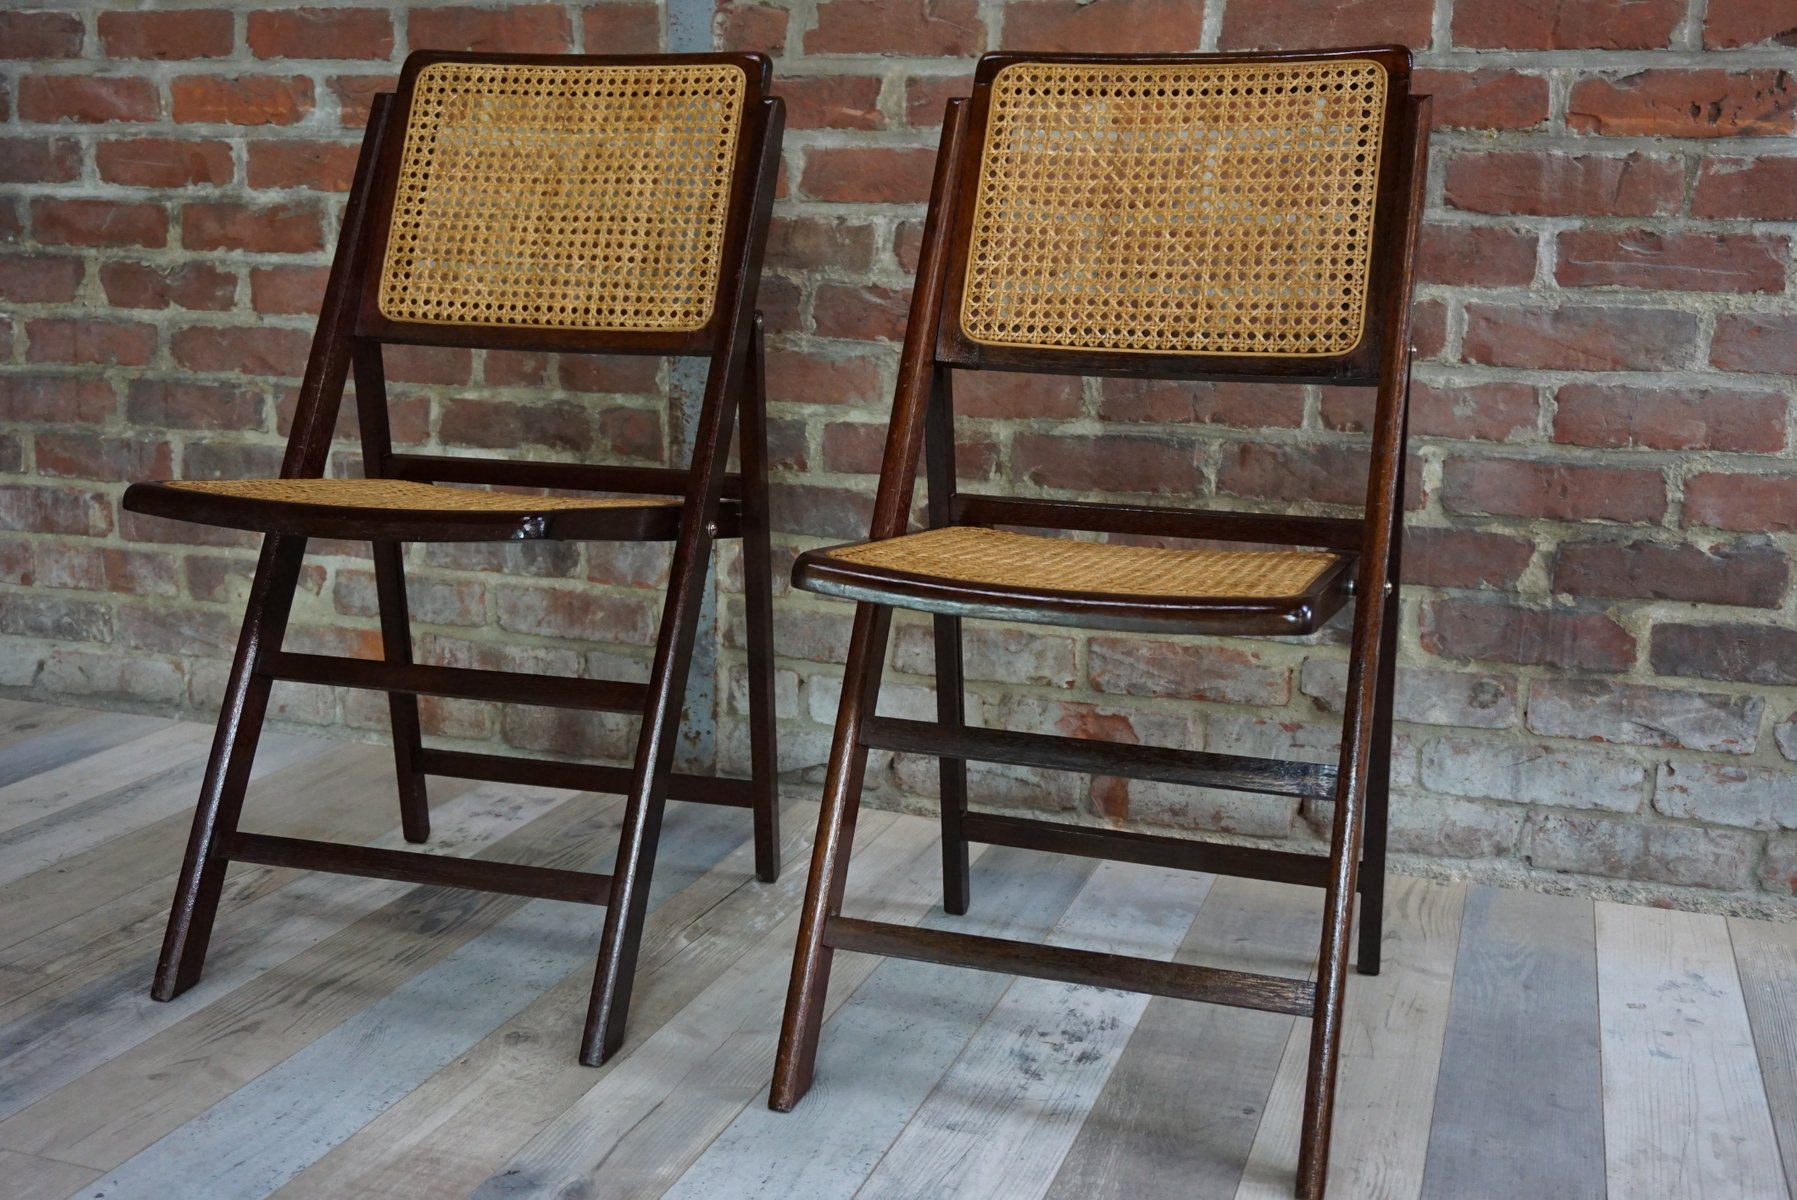 Wood & Cane Folding Chairs 1960s Set of 2 for sale at Pamono